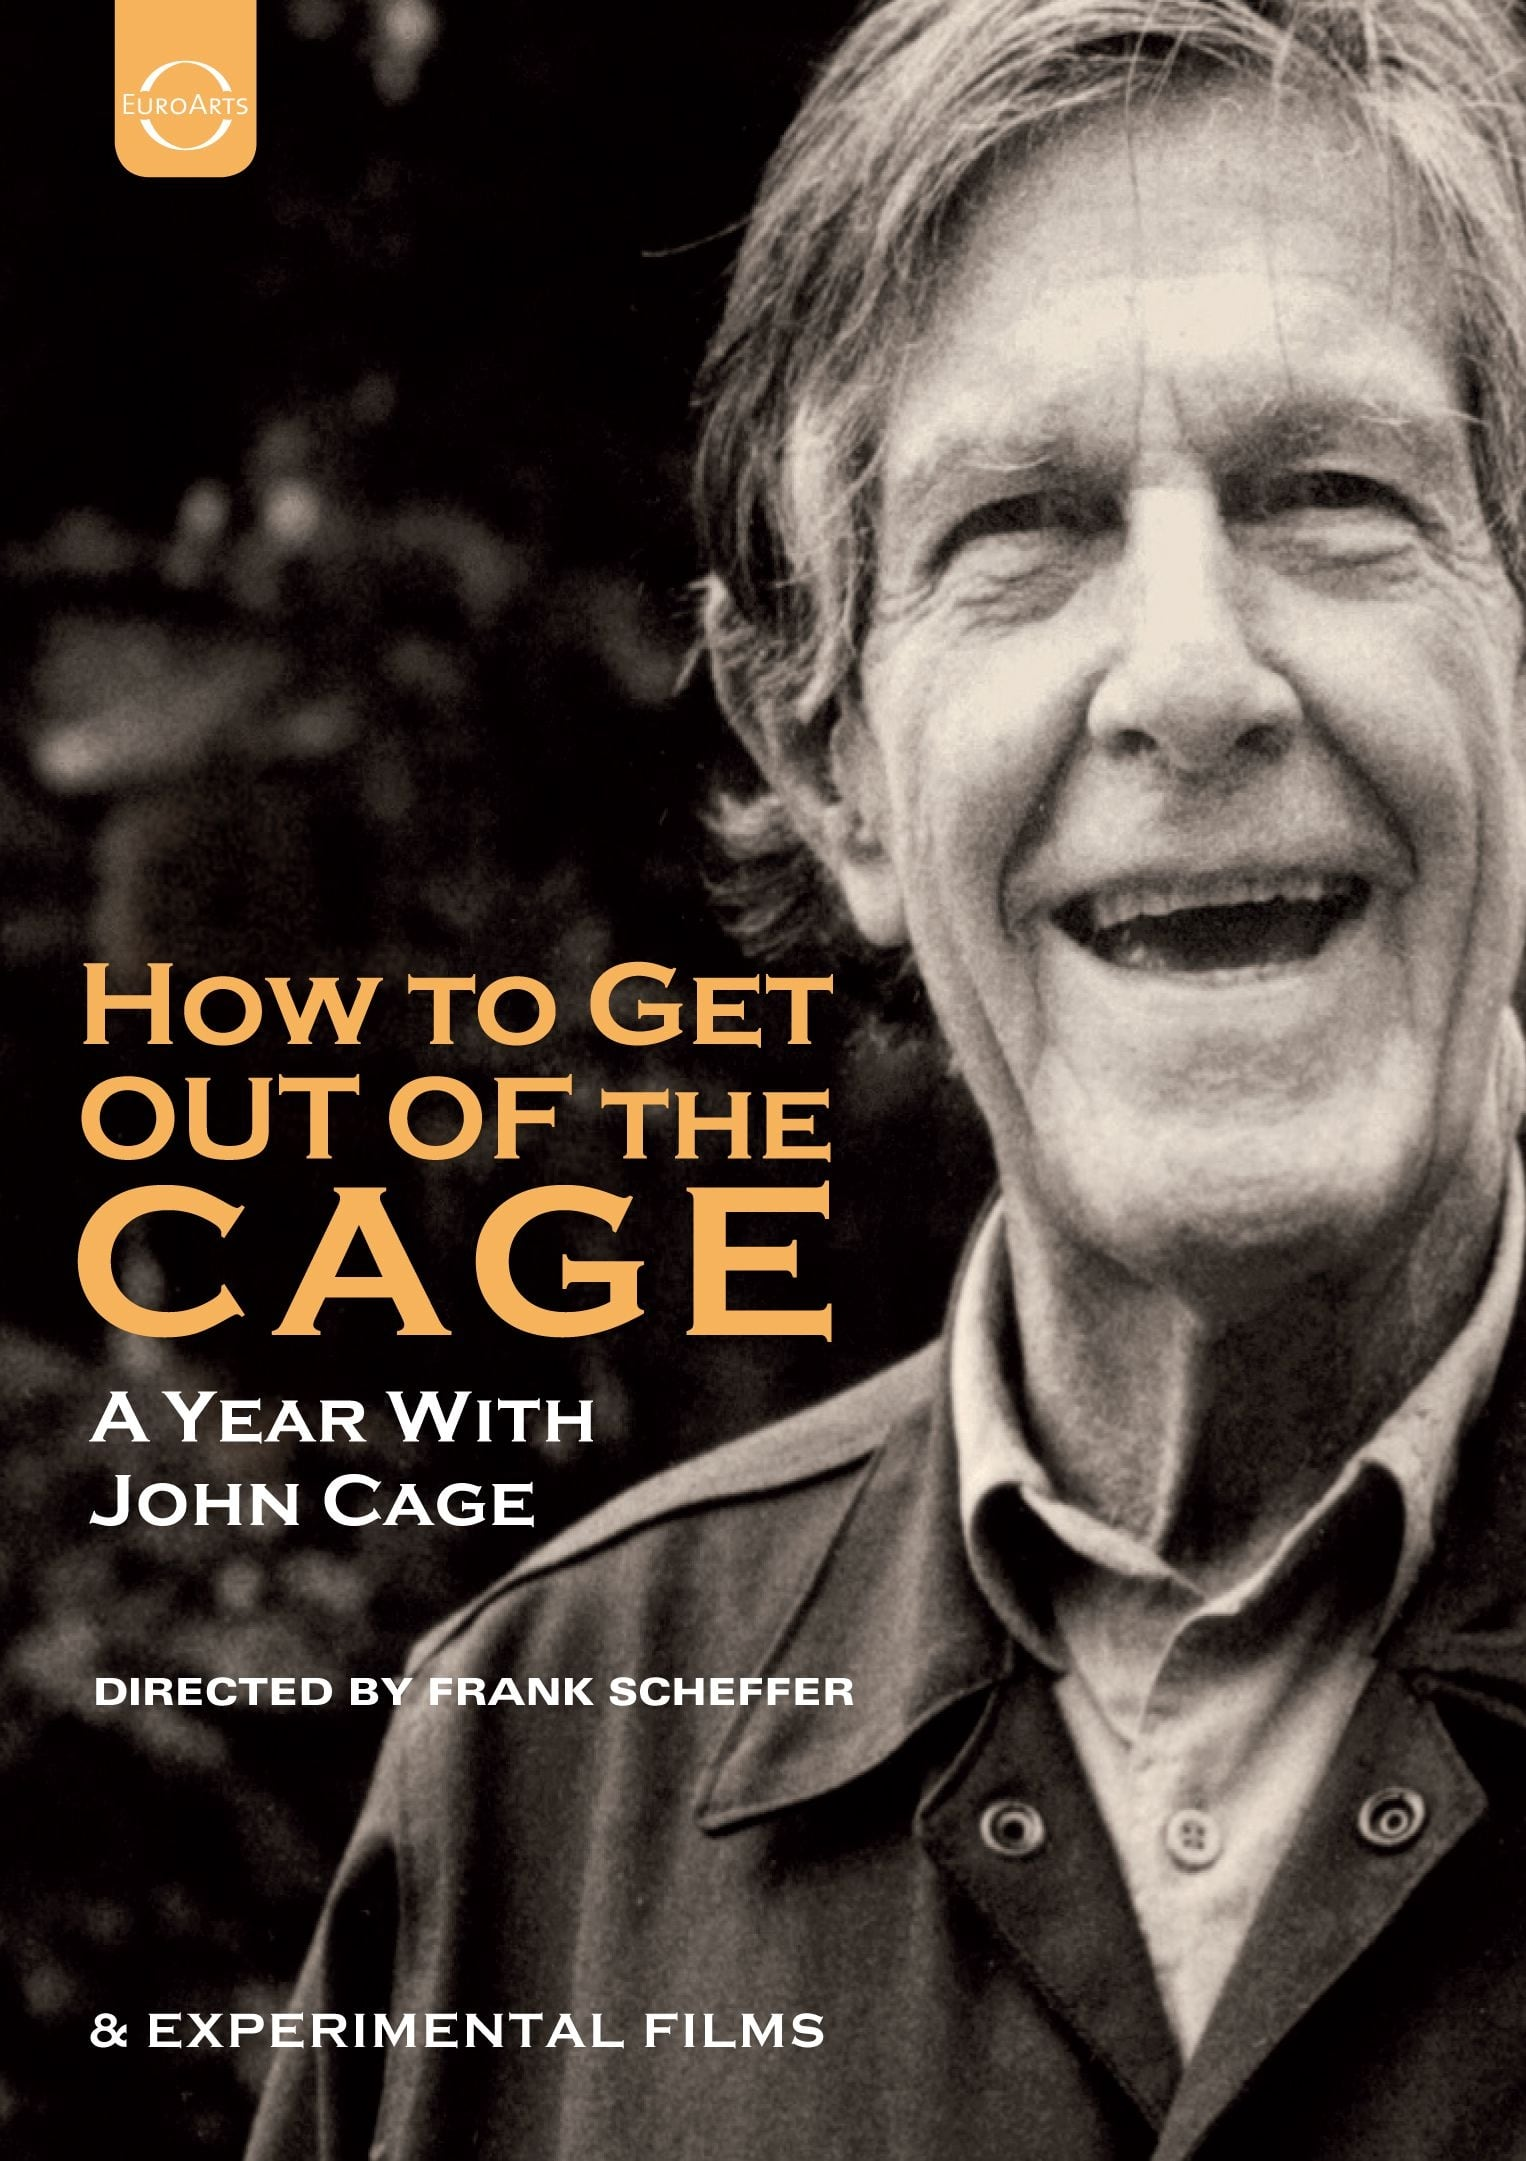 How to Get Out of the Cage (A year with John Cage) (2012)